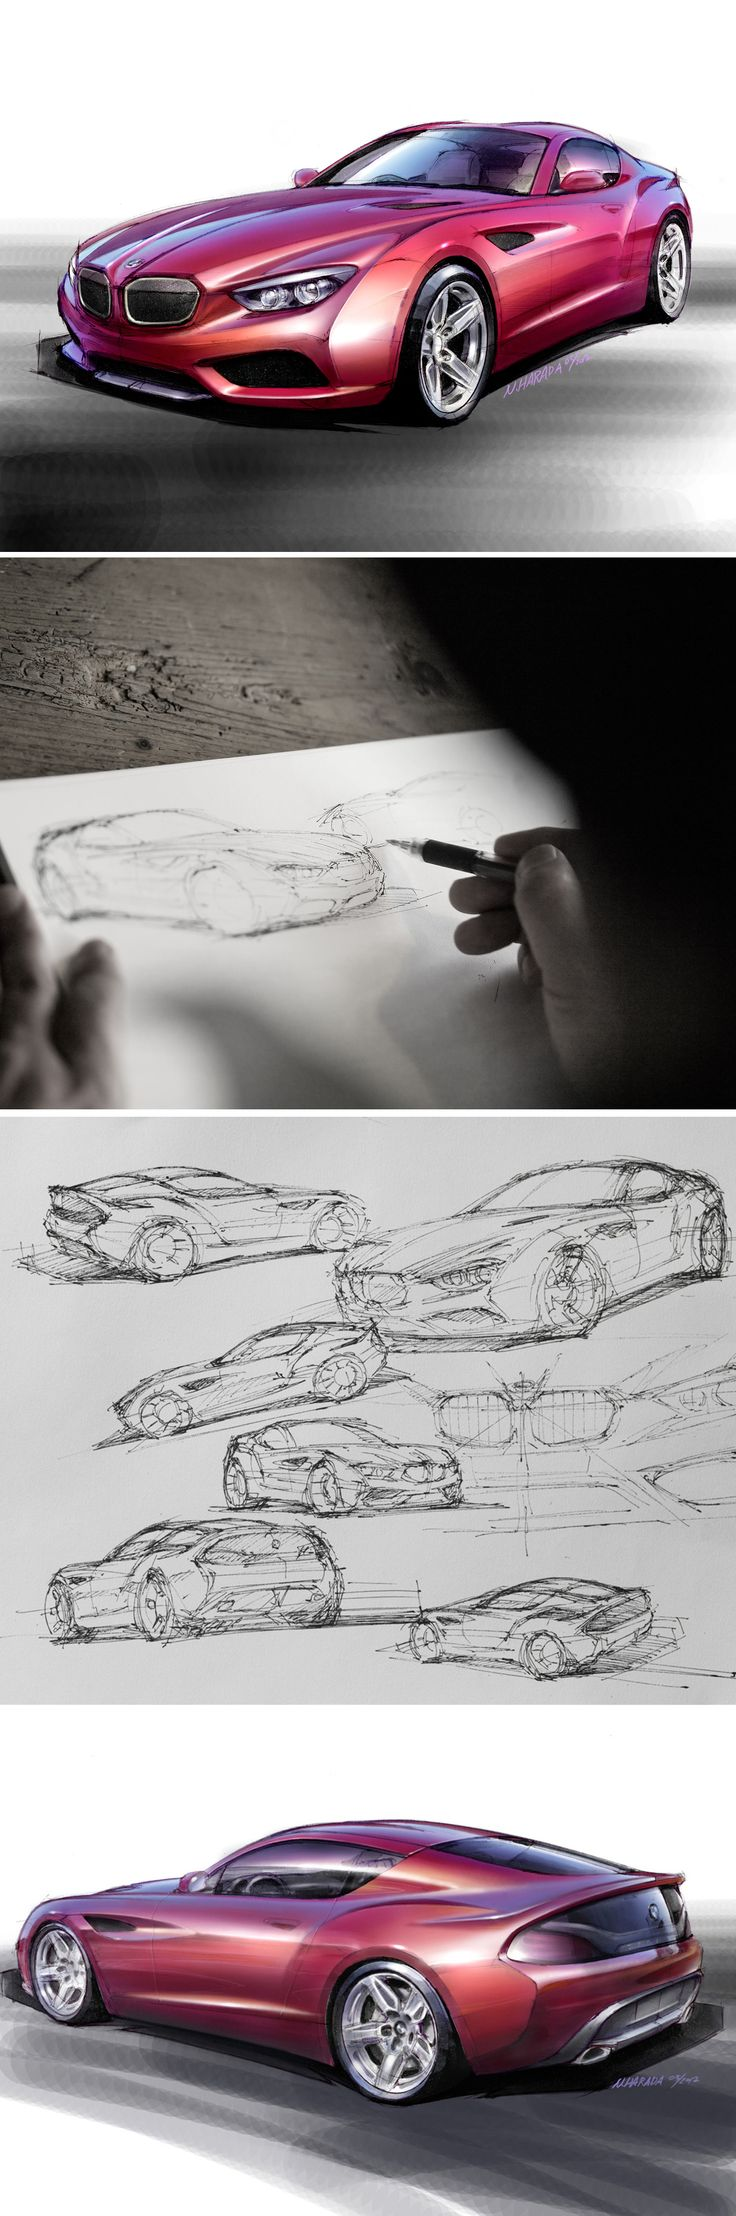 BMW - Zagato Design, BMW Sportscar - Great supercar design sketches & 3D